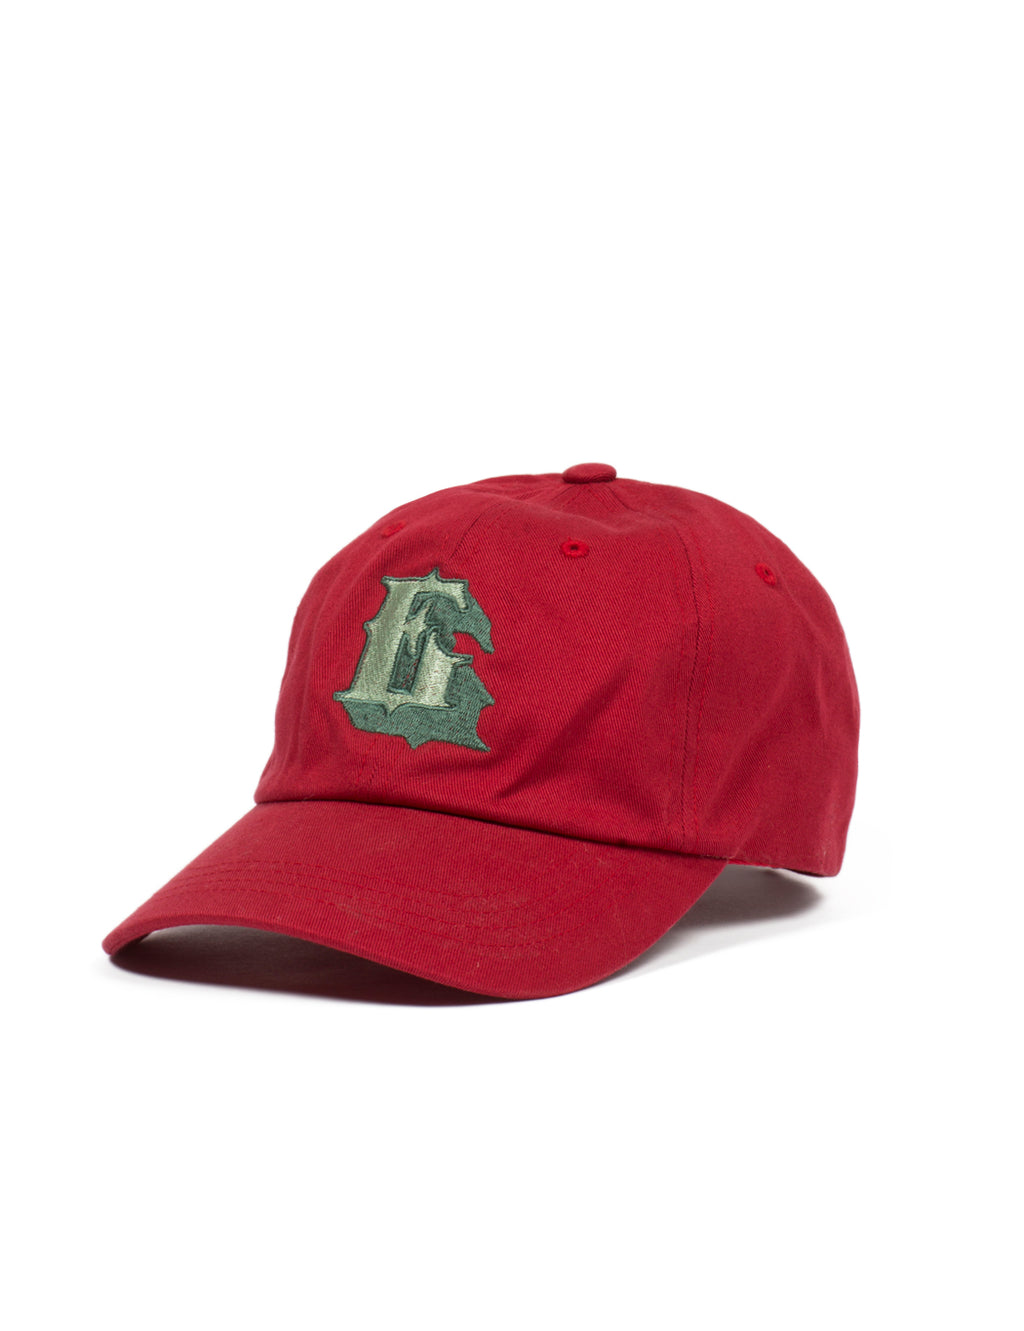 Tenderloin E Cotton Baseball Cap  - Red - Eine London by Ben Eine